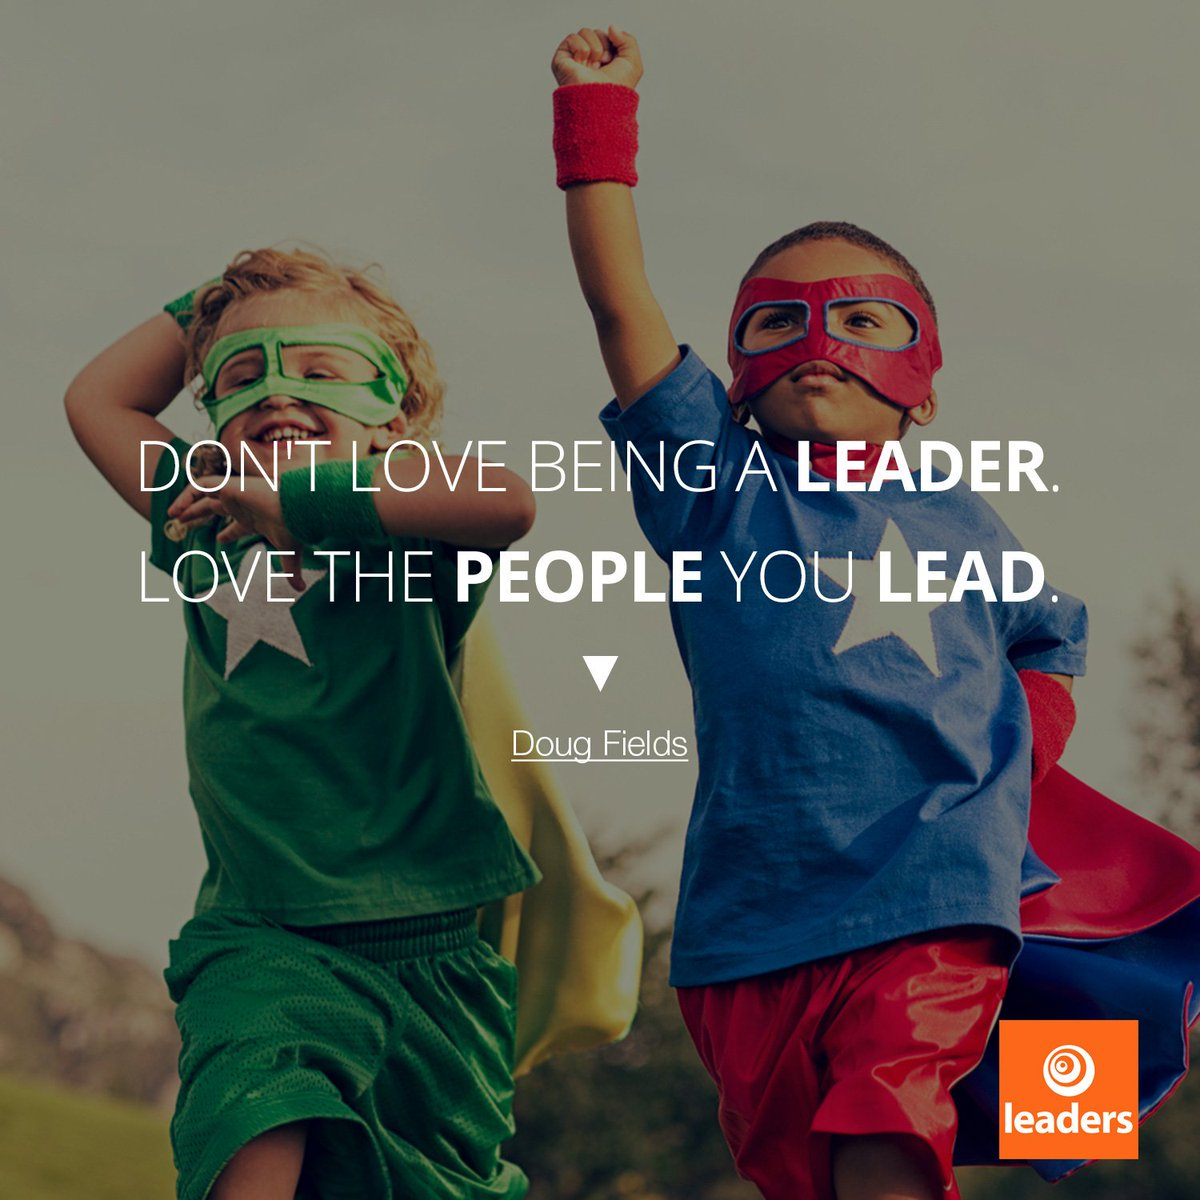 Don't love being a leader. Love the people you lead. #LeadUpChat #edleadership #JoyfulLeaders #edchat